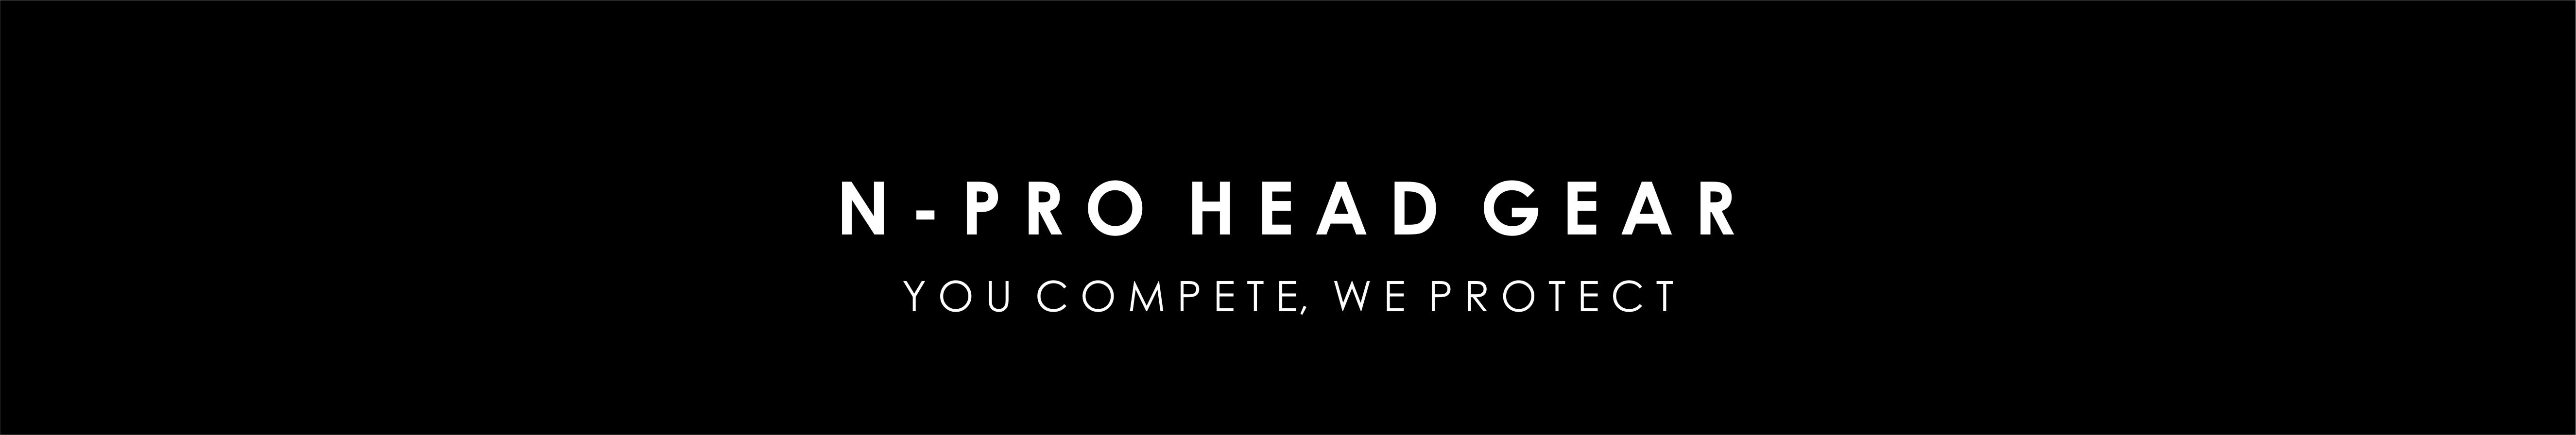 n-pro-head-gear-banner-adults.jpg